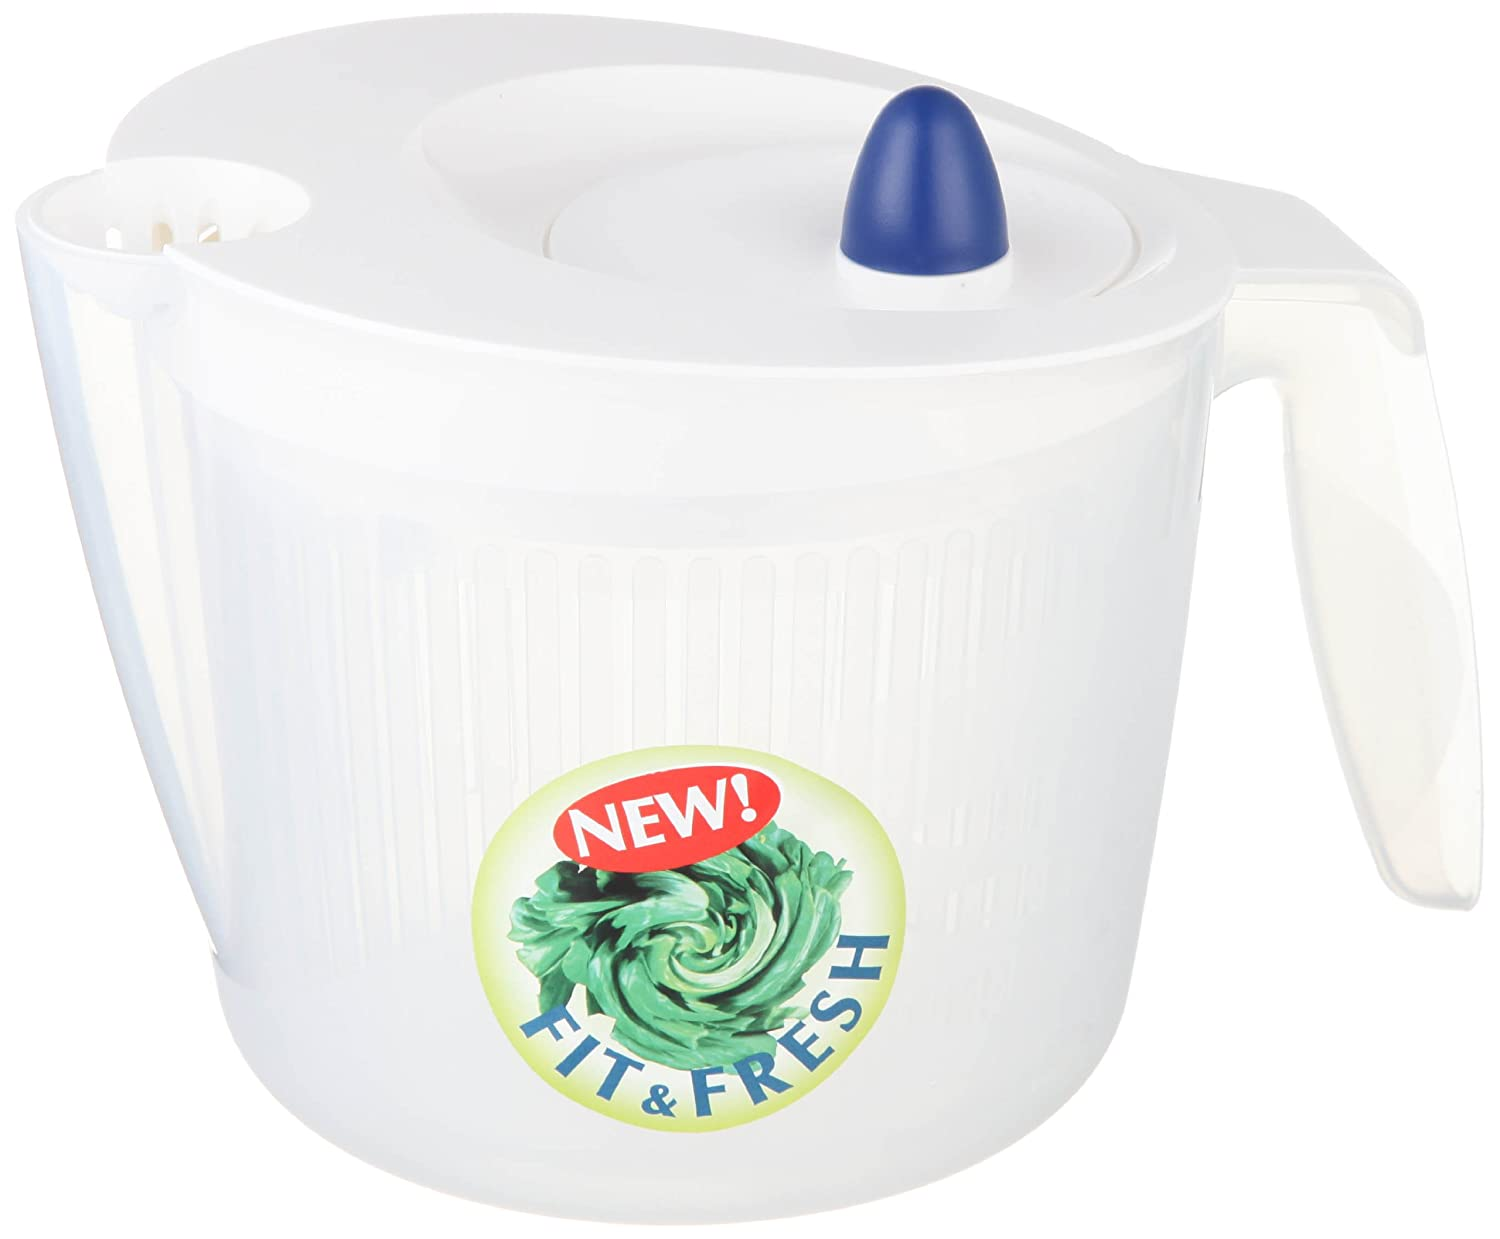 Emsa 502992 Fit and Fresh small salad spinner, 2.0 litres, white